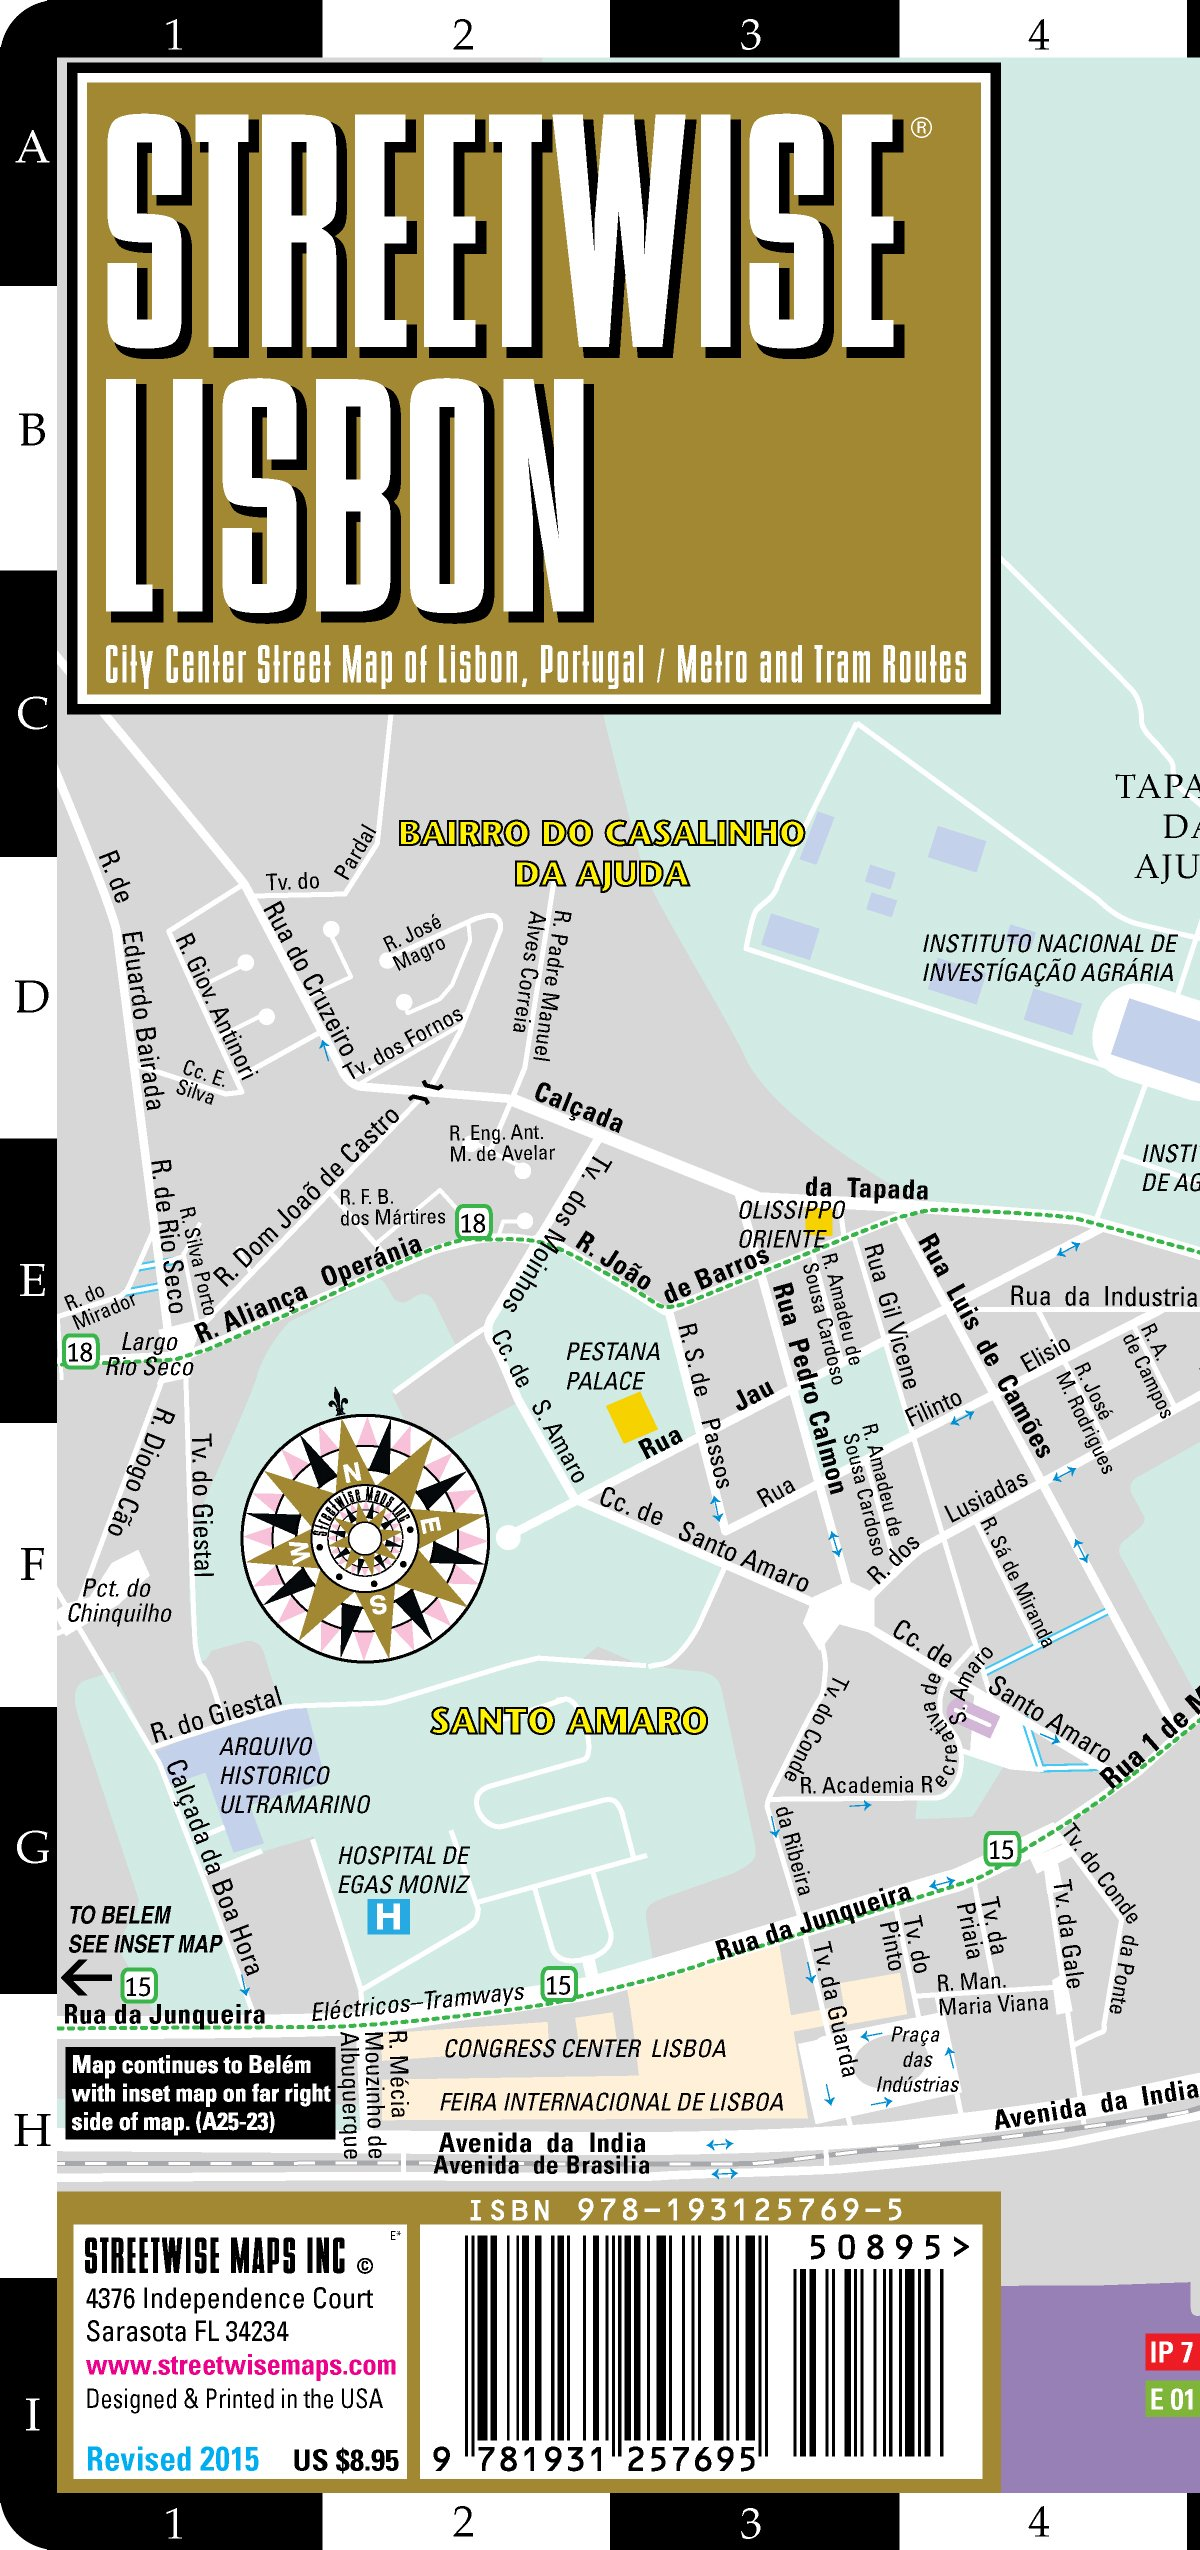 Streetwise Lisbon Map Laminated City Center Street Map Of Lisbon - Portugal india map